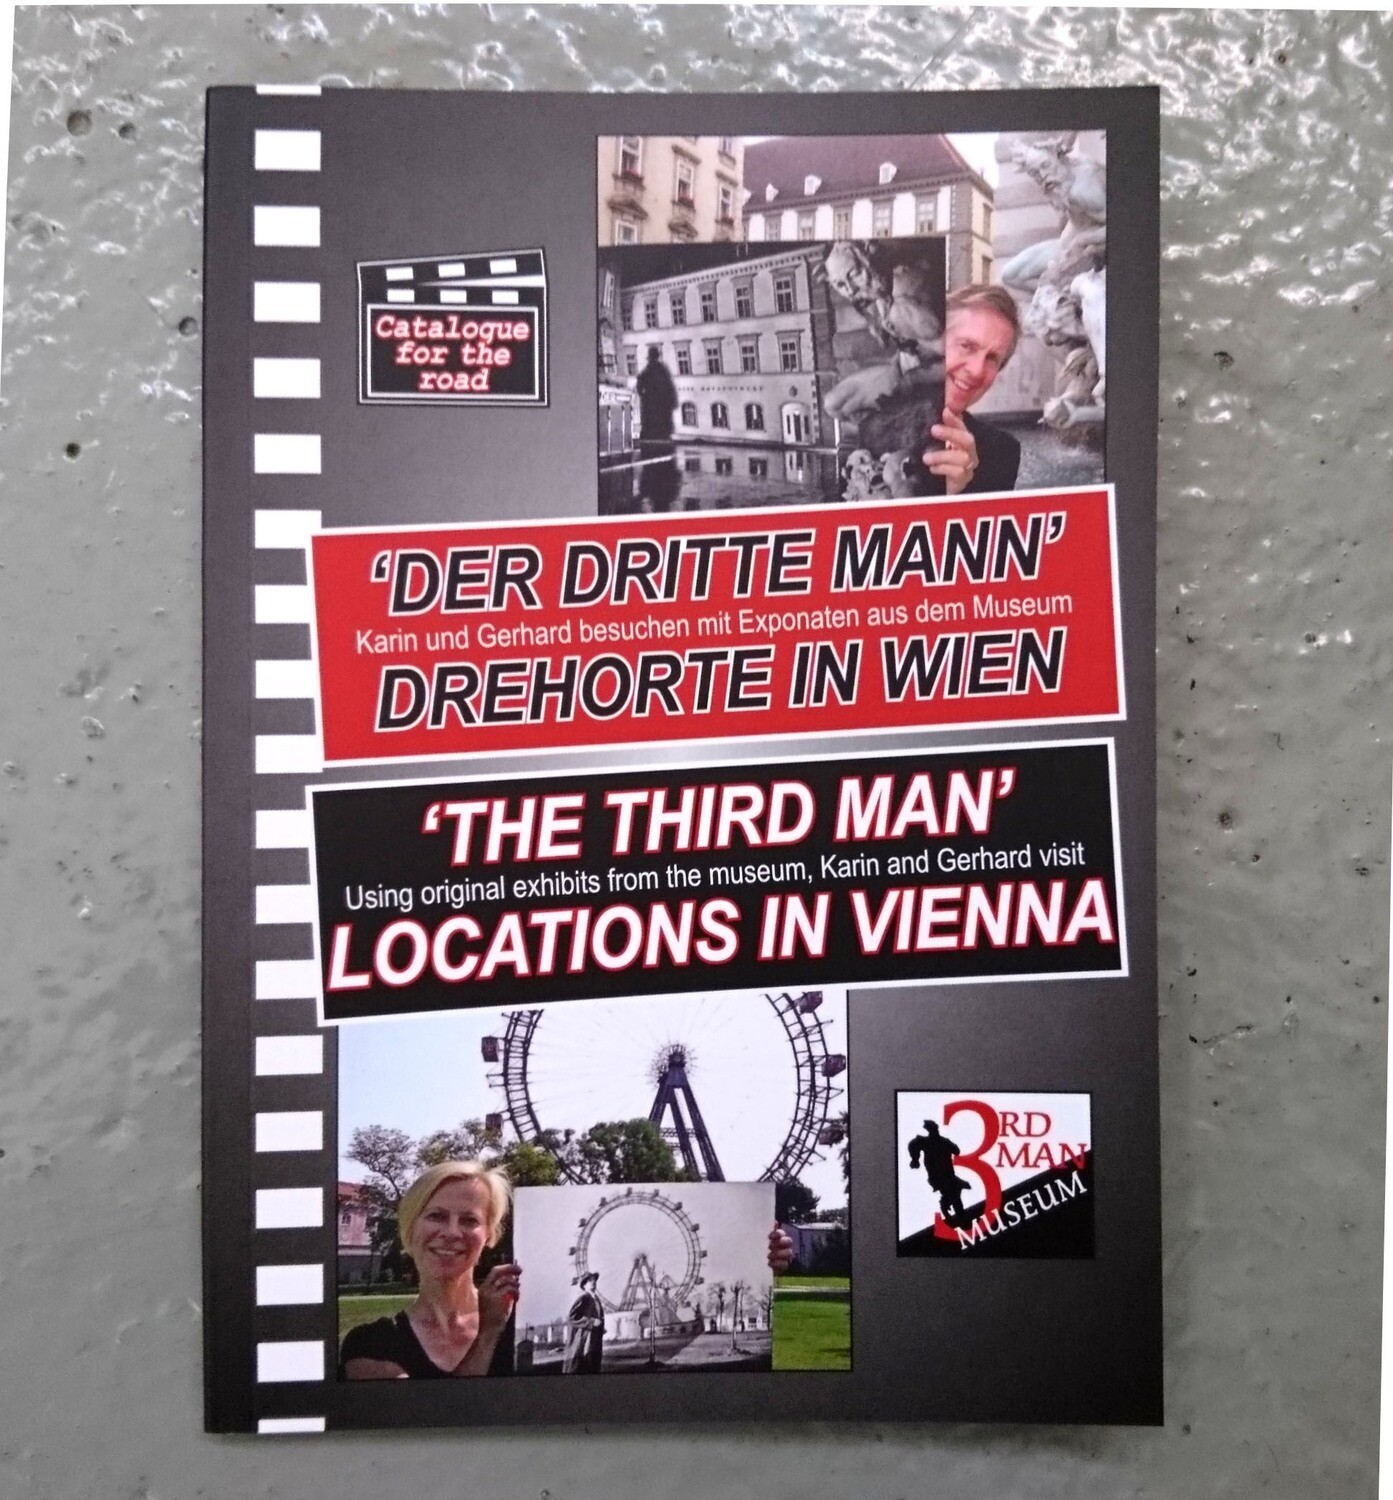 DREHORTE IN WIEN / FILMING LOCATIONS IN VIENNA